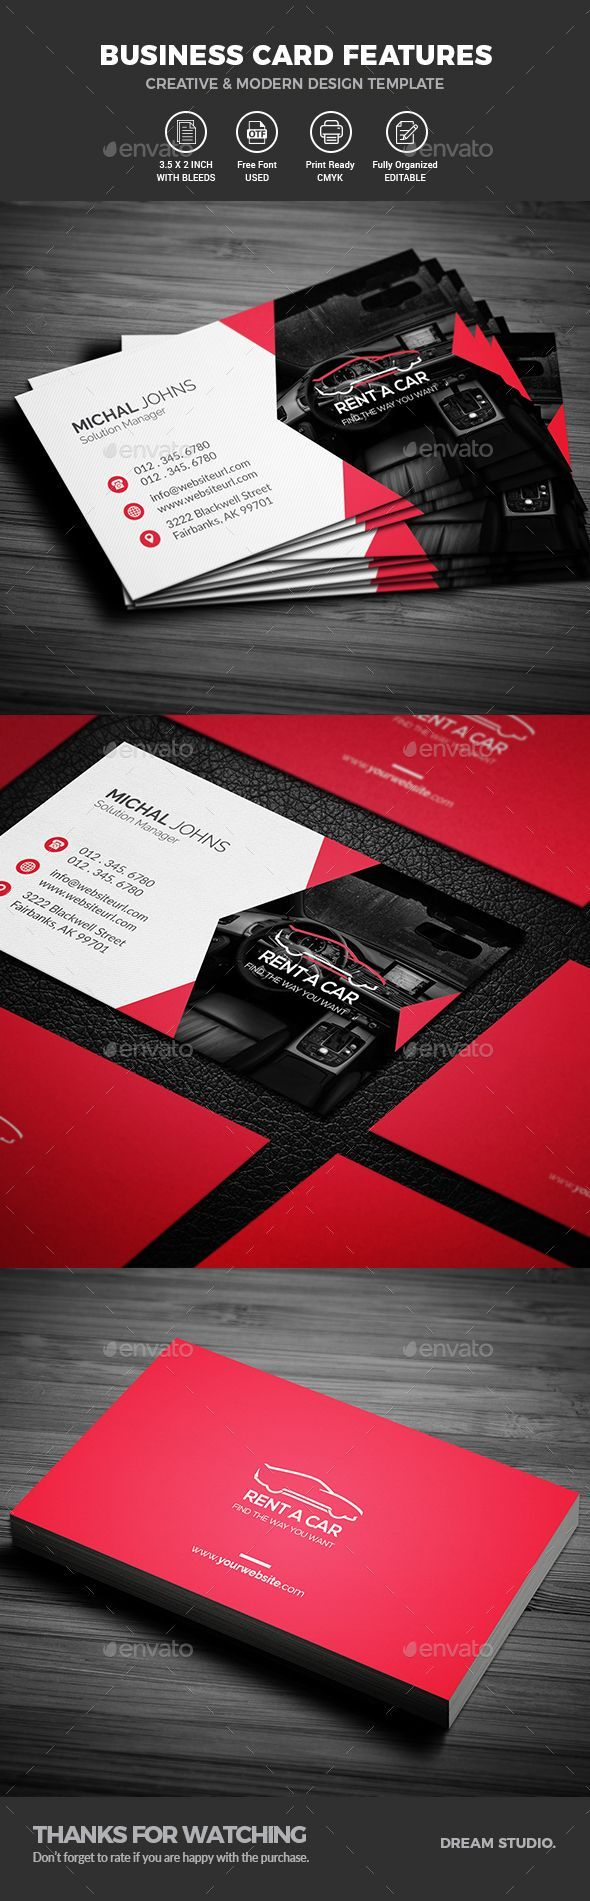 656 best images on pinterest business card design business cards business cards print templates download here https reheart Choice Image